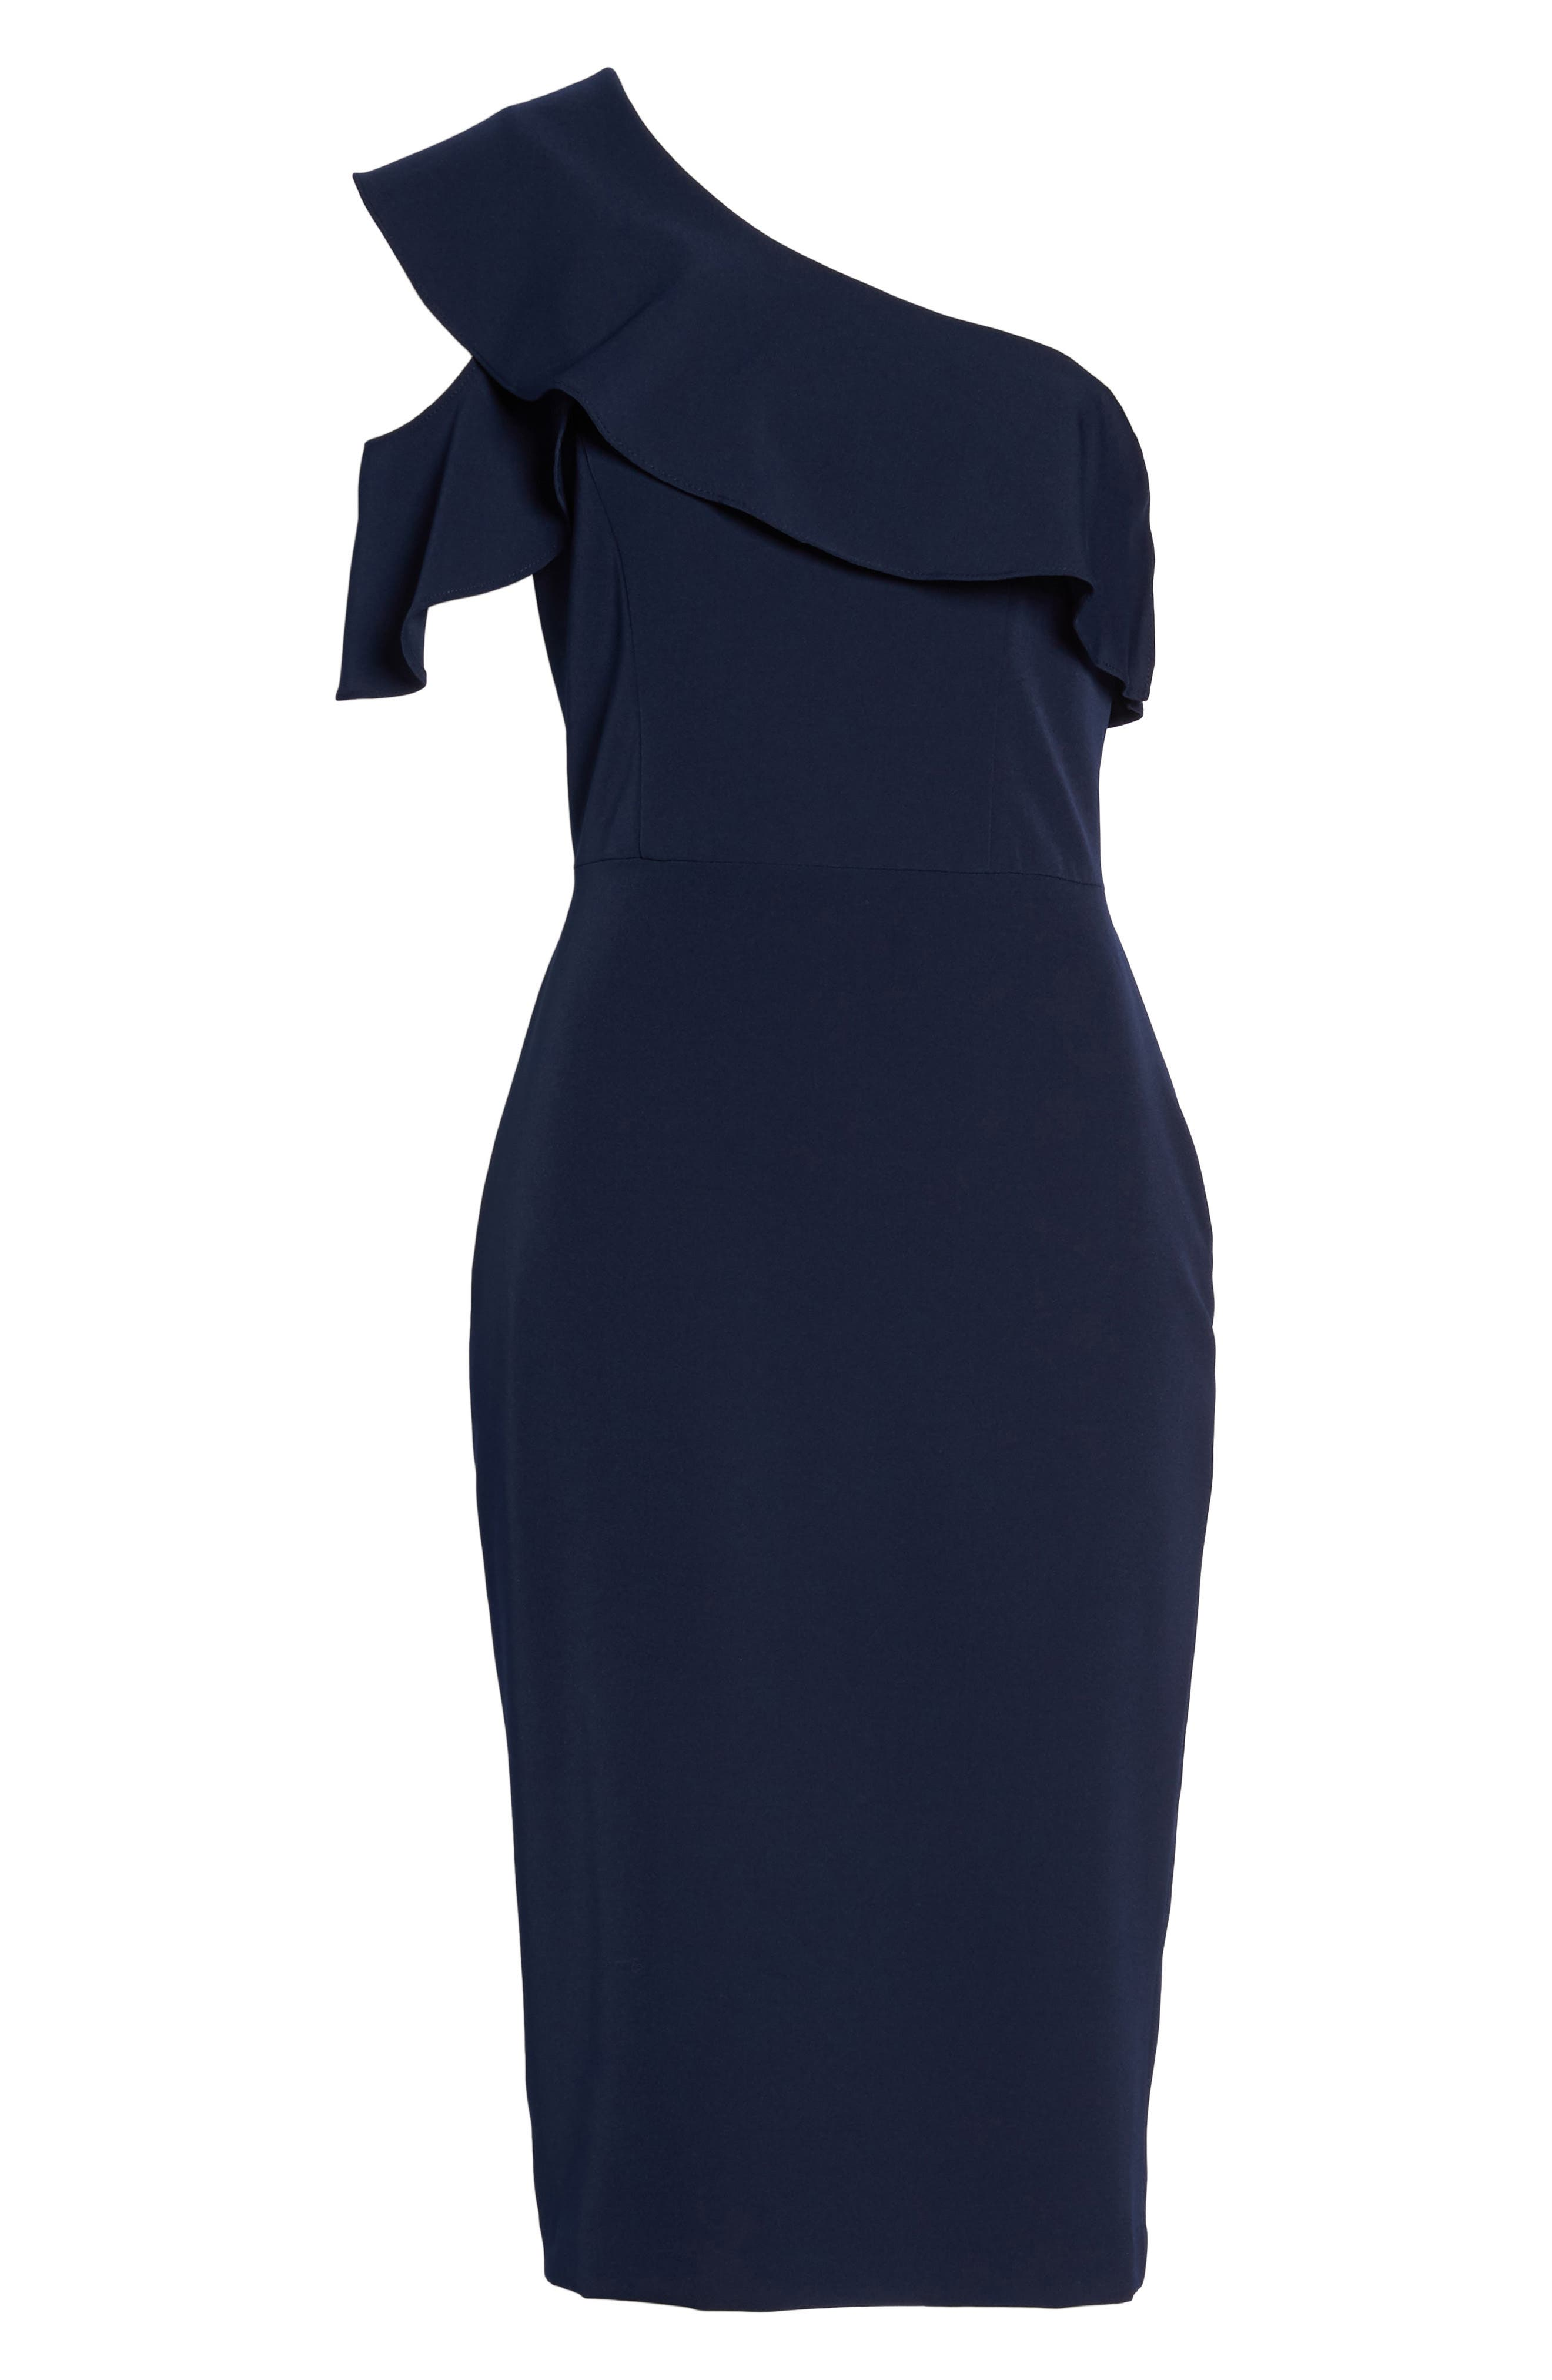 Dream One-Shoulder Crepe Ruffle Dress,                             Alternate thumbnail 7, color,                             Navy